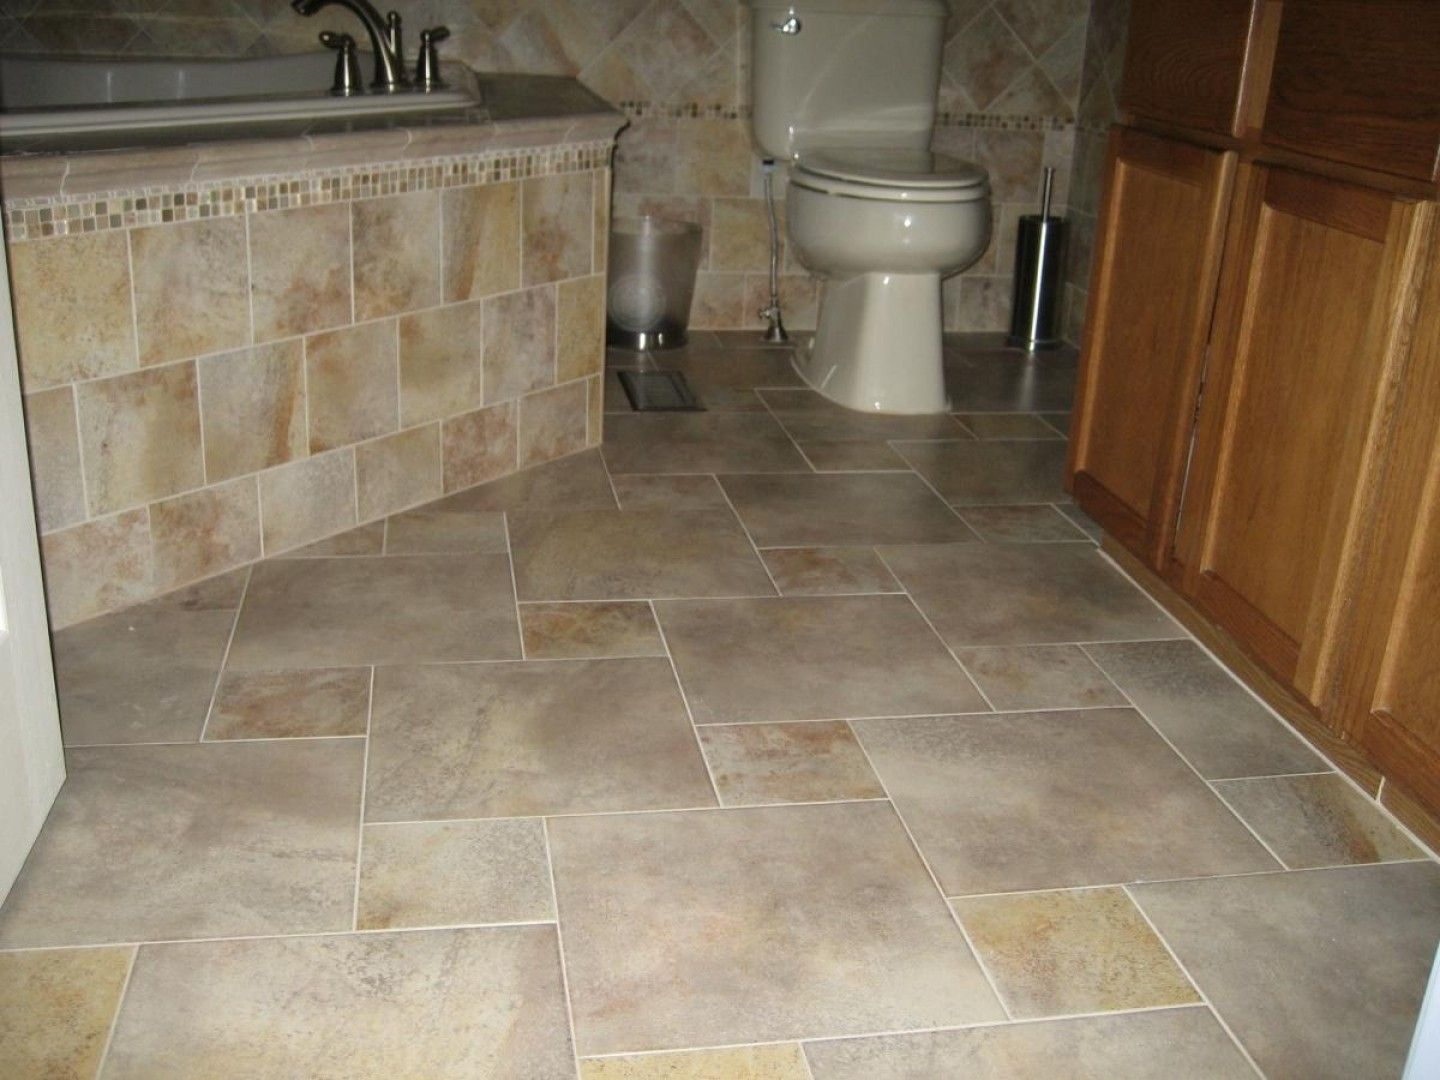 Bathroom floor tile layout patterns bathroom pinterest Tiles arrangement for bathroom